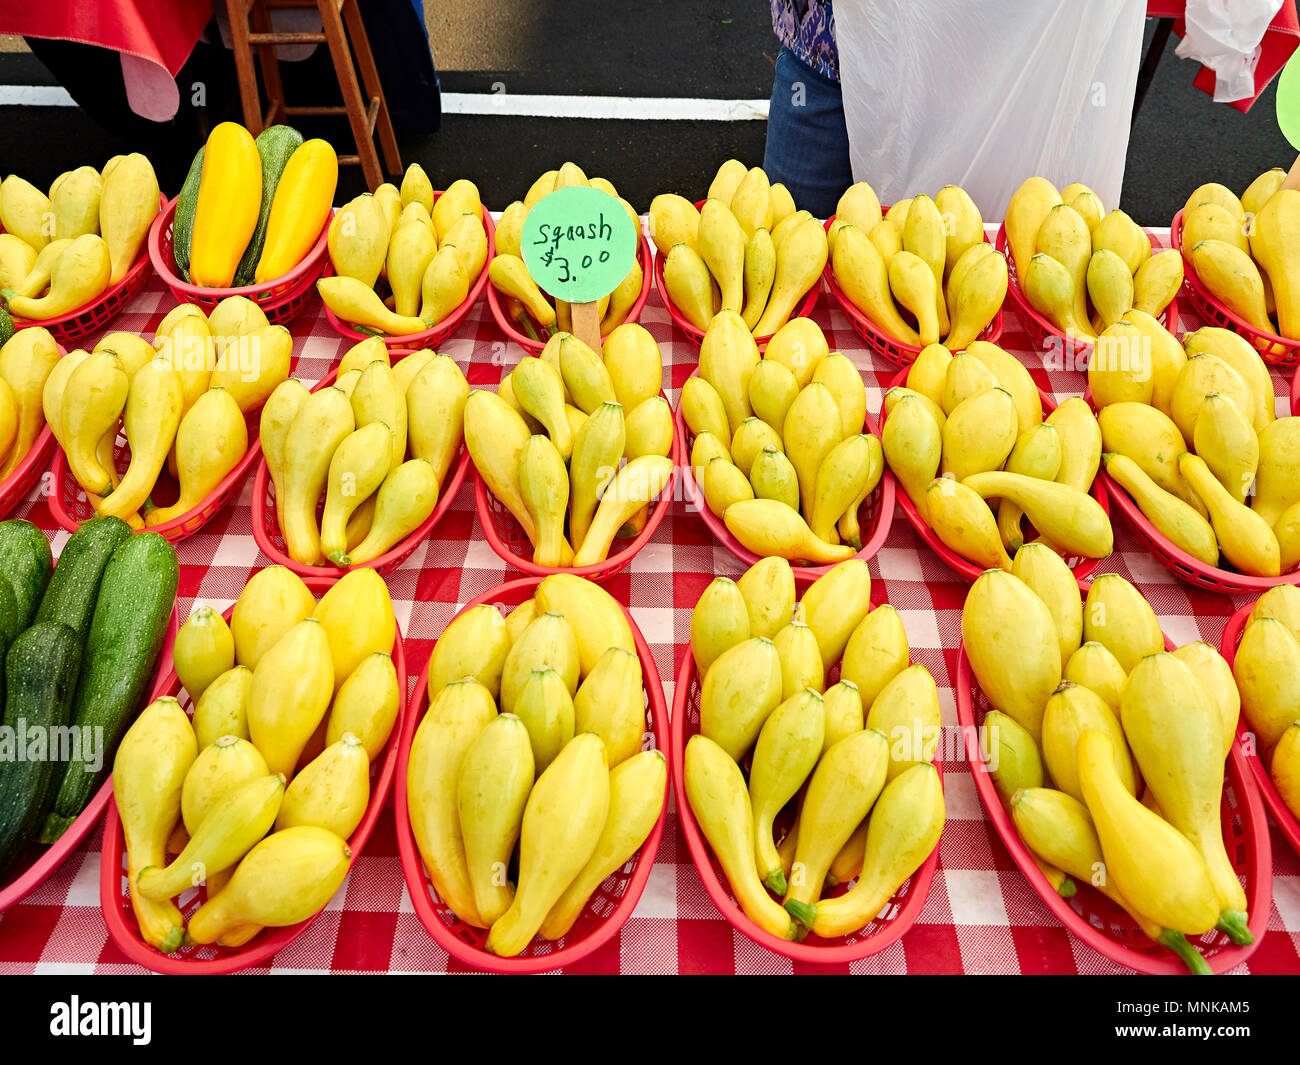 Baskets of fresh yellow squash or summer squash on display, for sale, at a local farmer's market in Montgomery Alabama, USA. - Stock Image